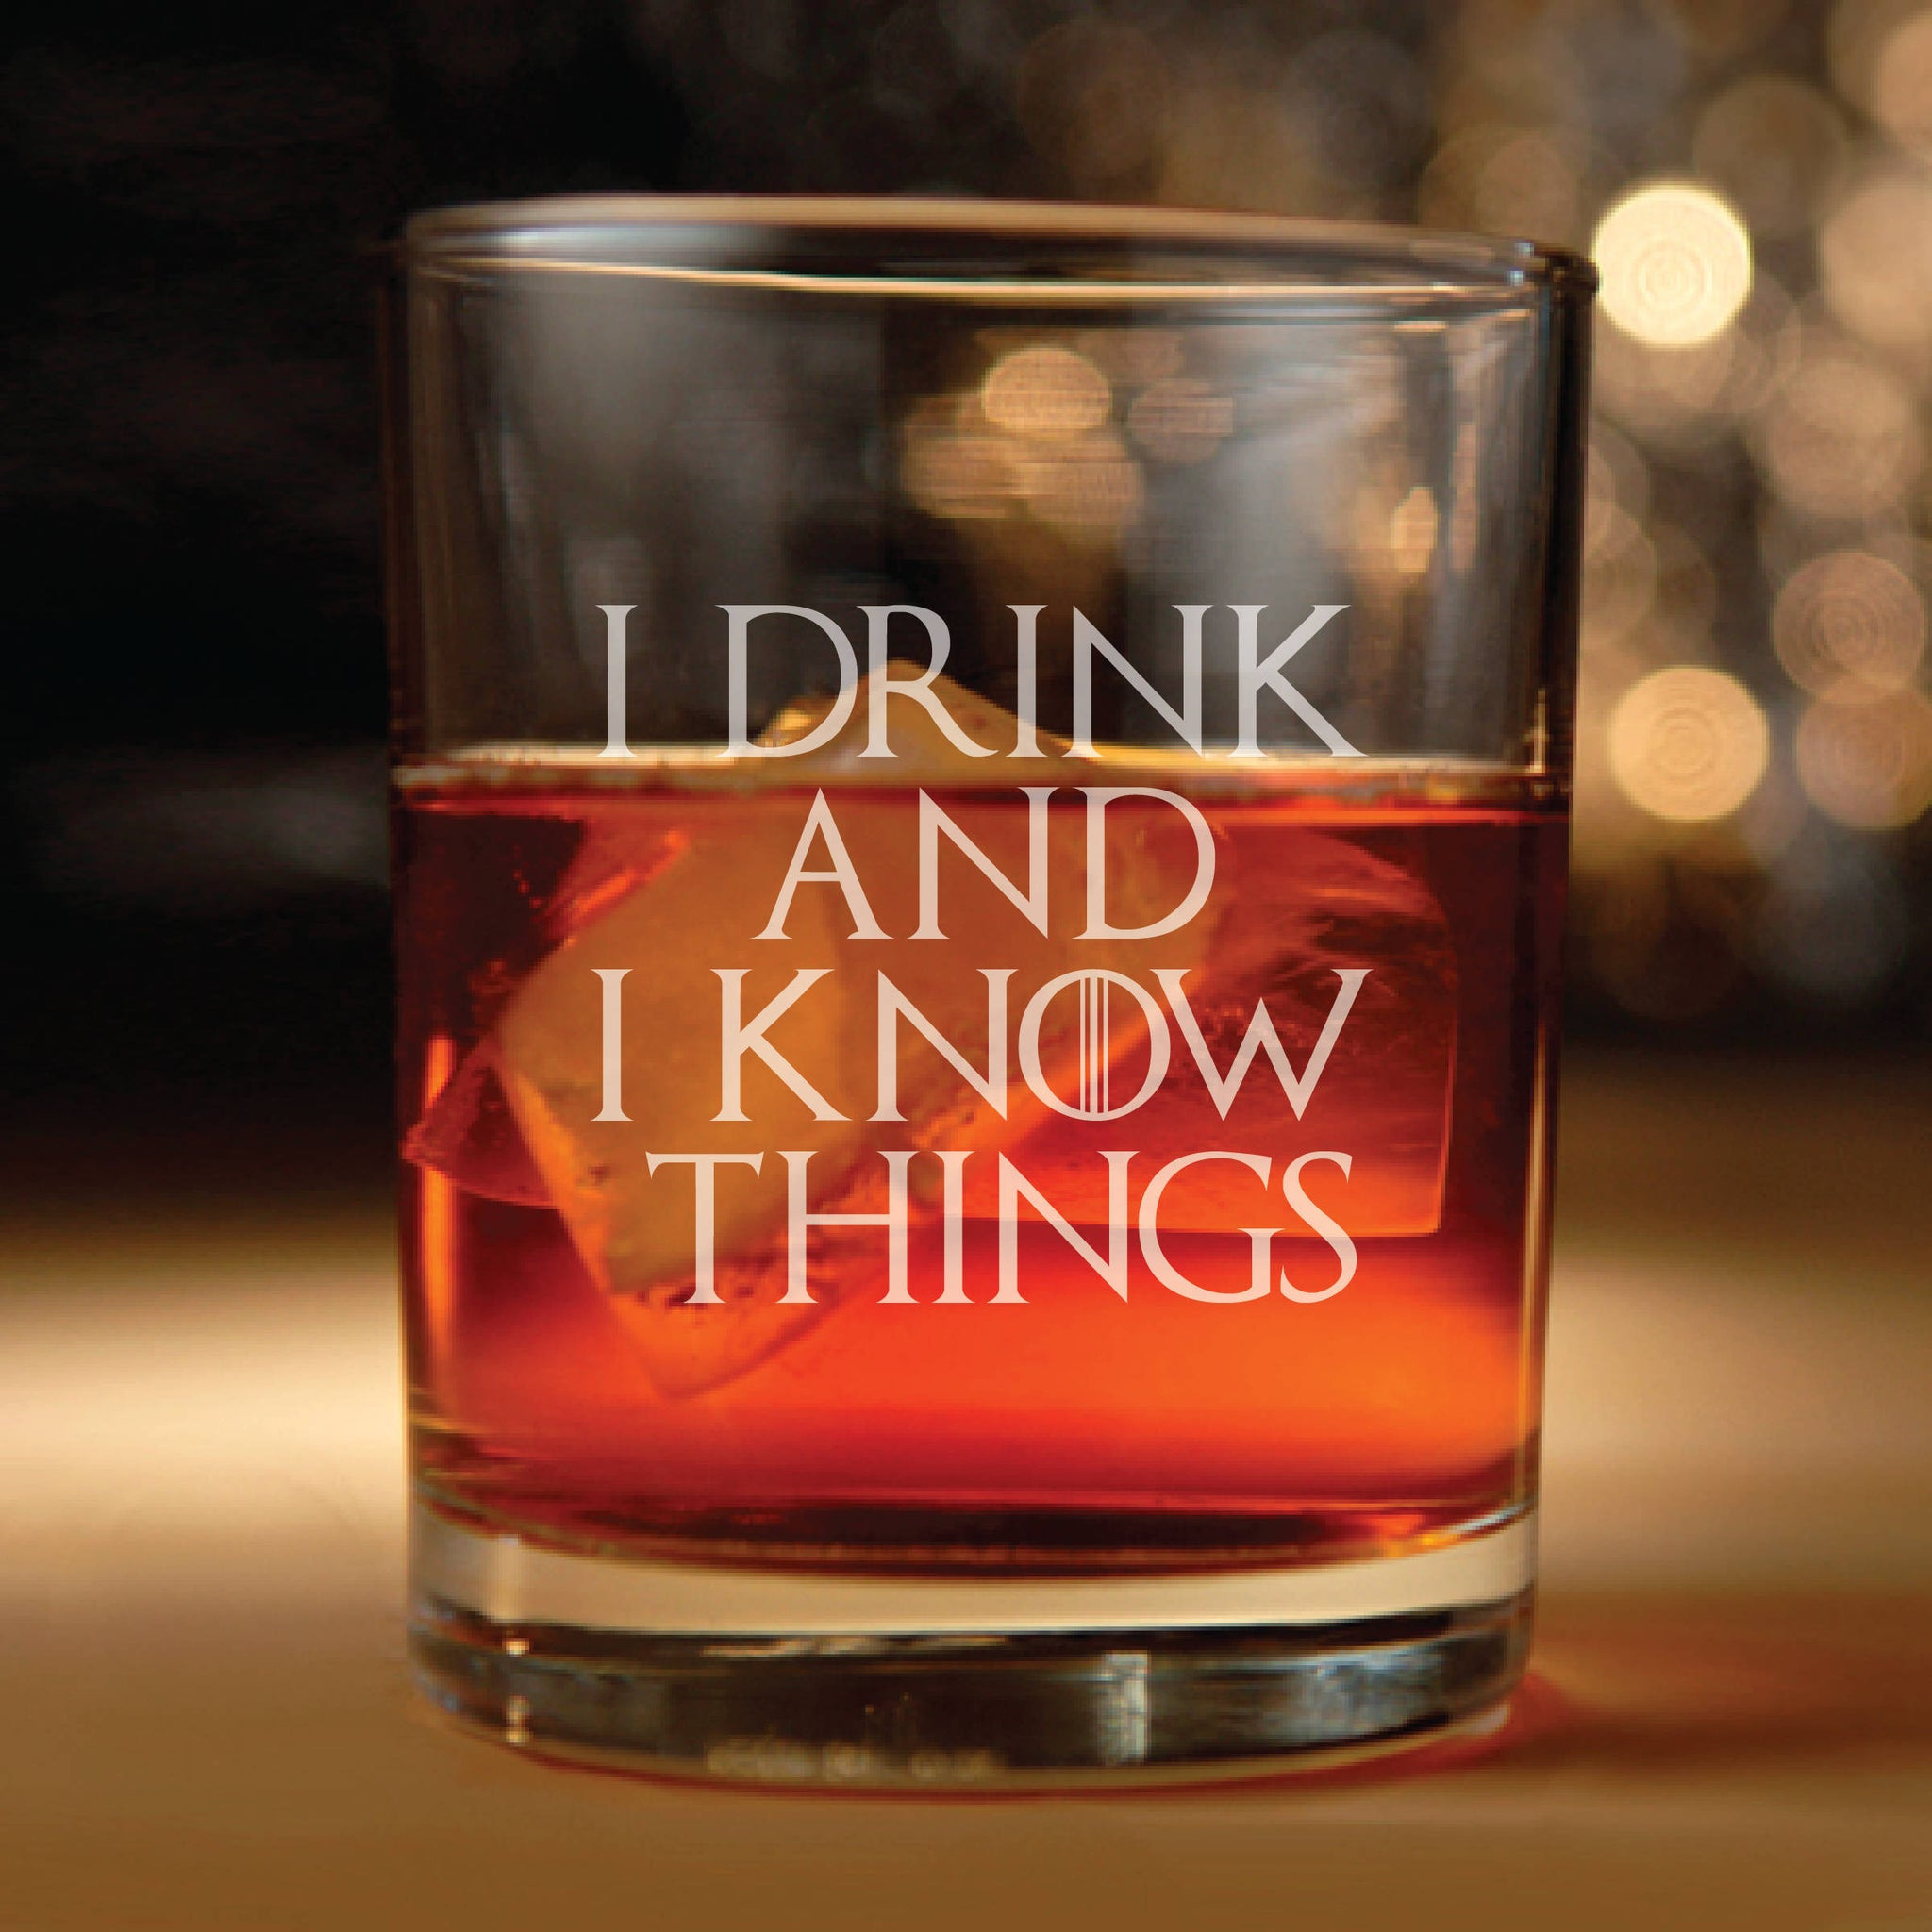 Game of Thrones inspired whiskey glass - I drink and I know things( Whiskey Glass Set, tyrion lannister, got, game of thrones gift